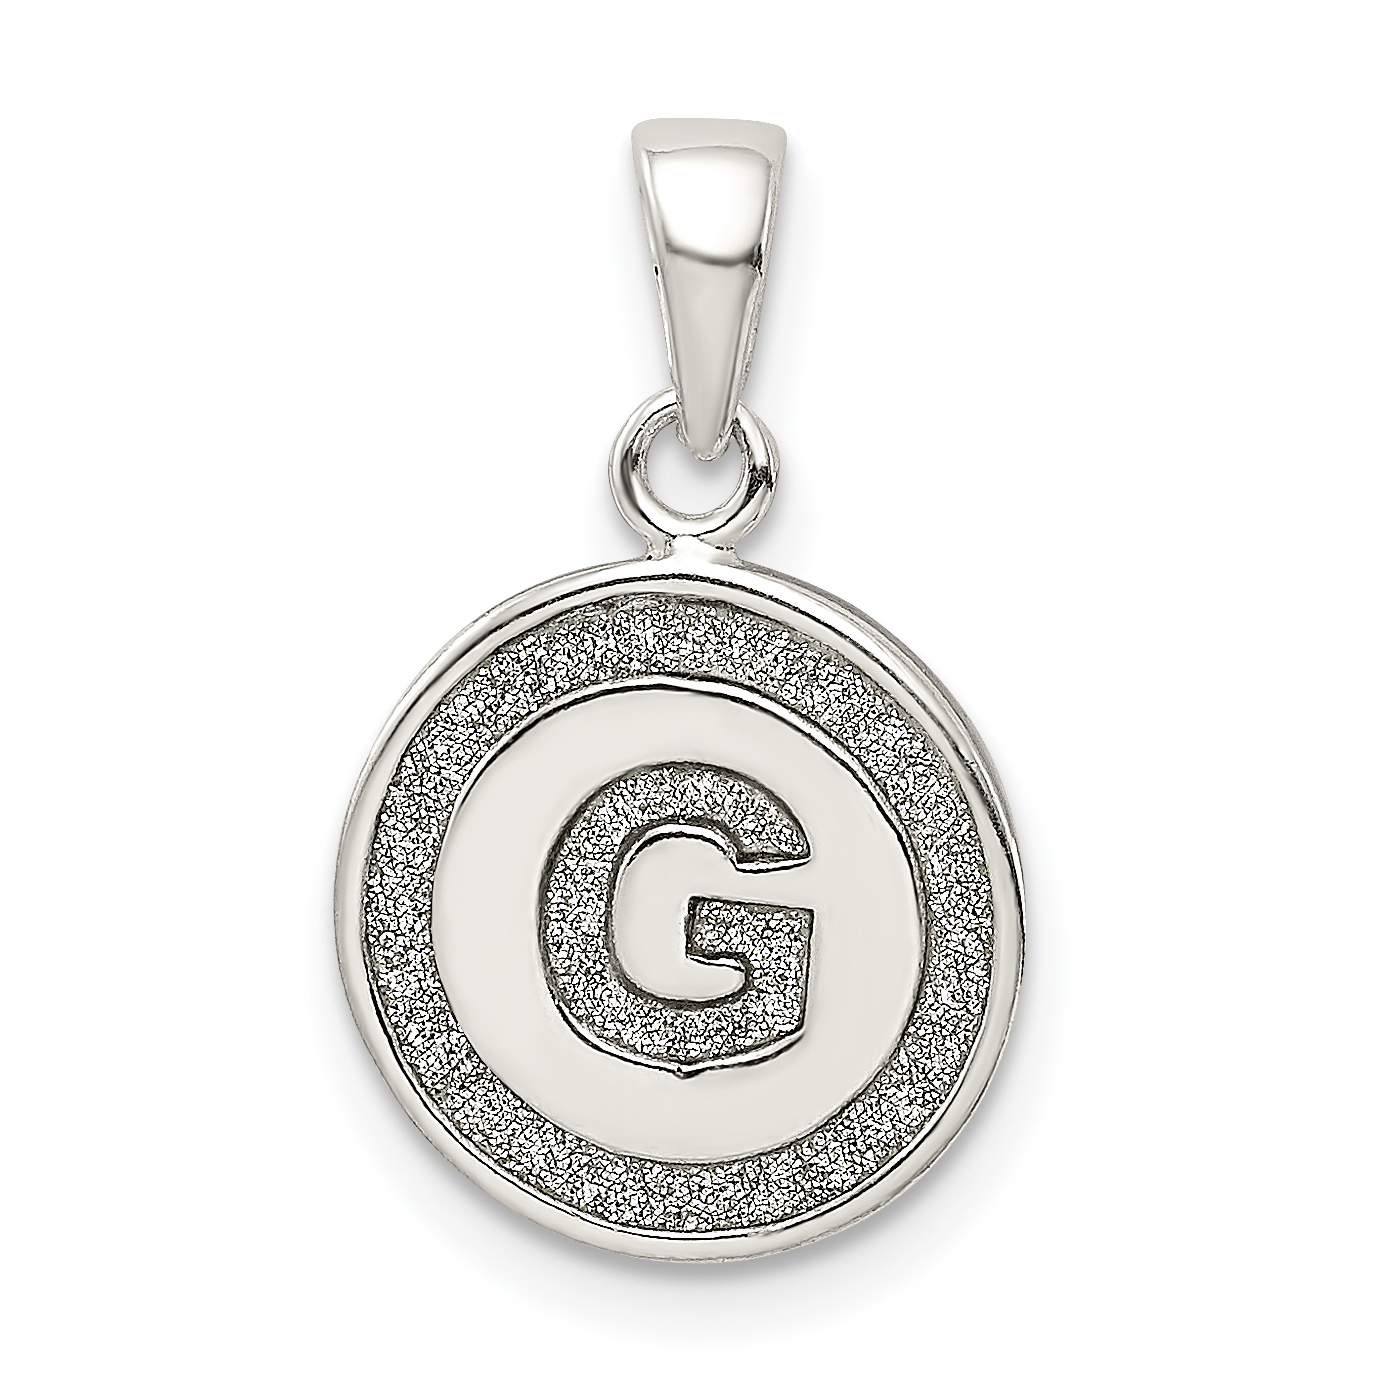 12mm Solid 925 Sterling Silver with Gold-Toned Alpha Phi Extra Small Enl Pendant with Necklace